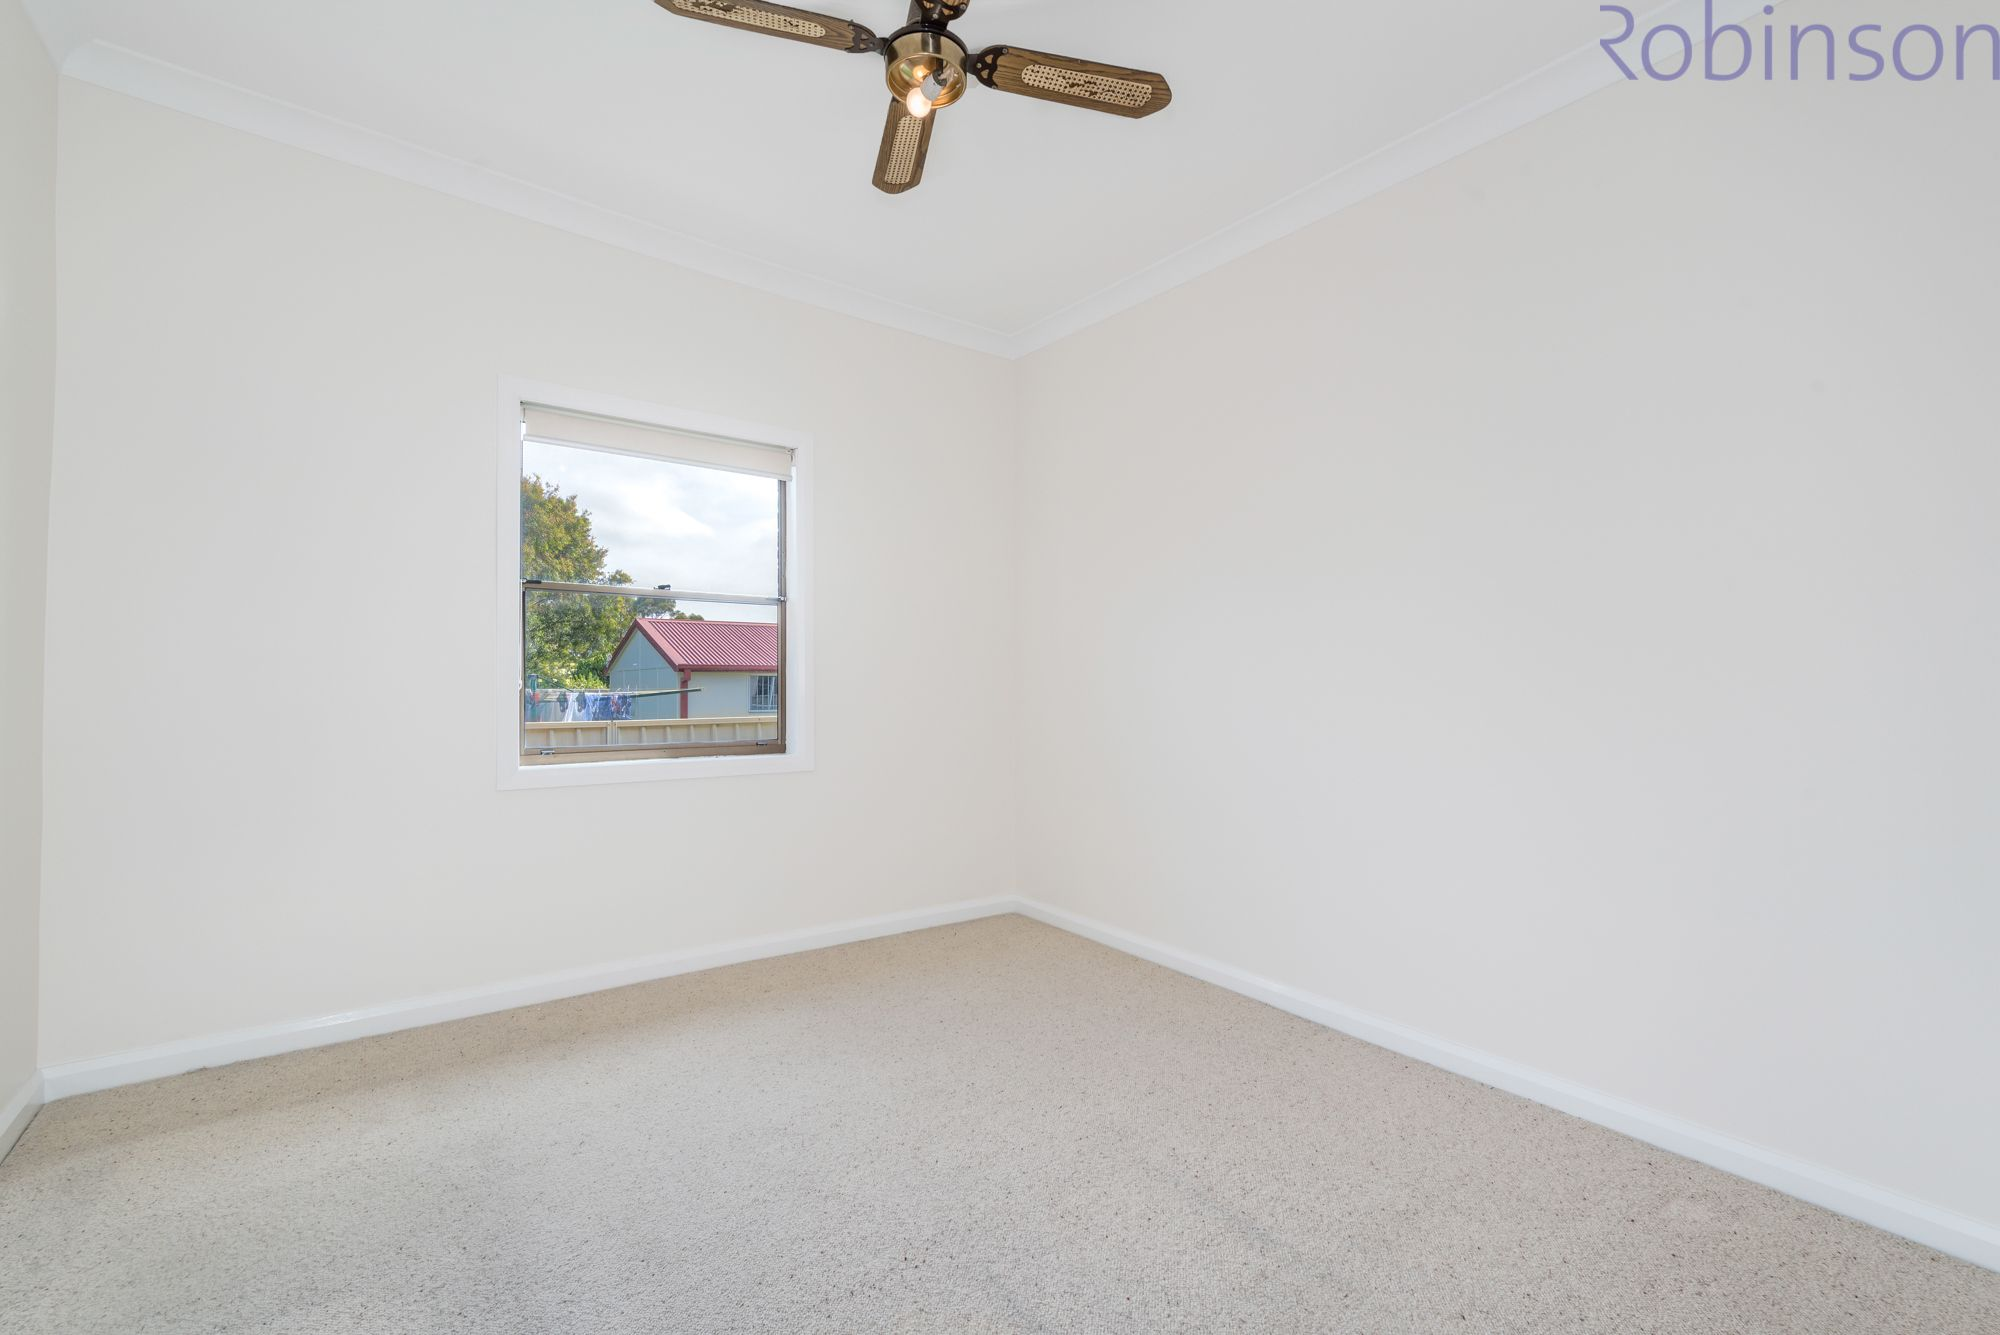 2A Harle Street, Hamilton South